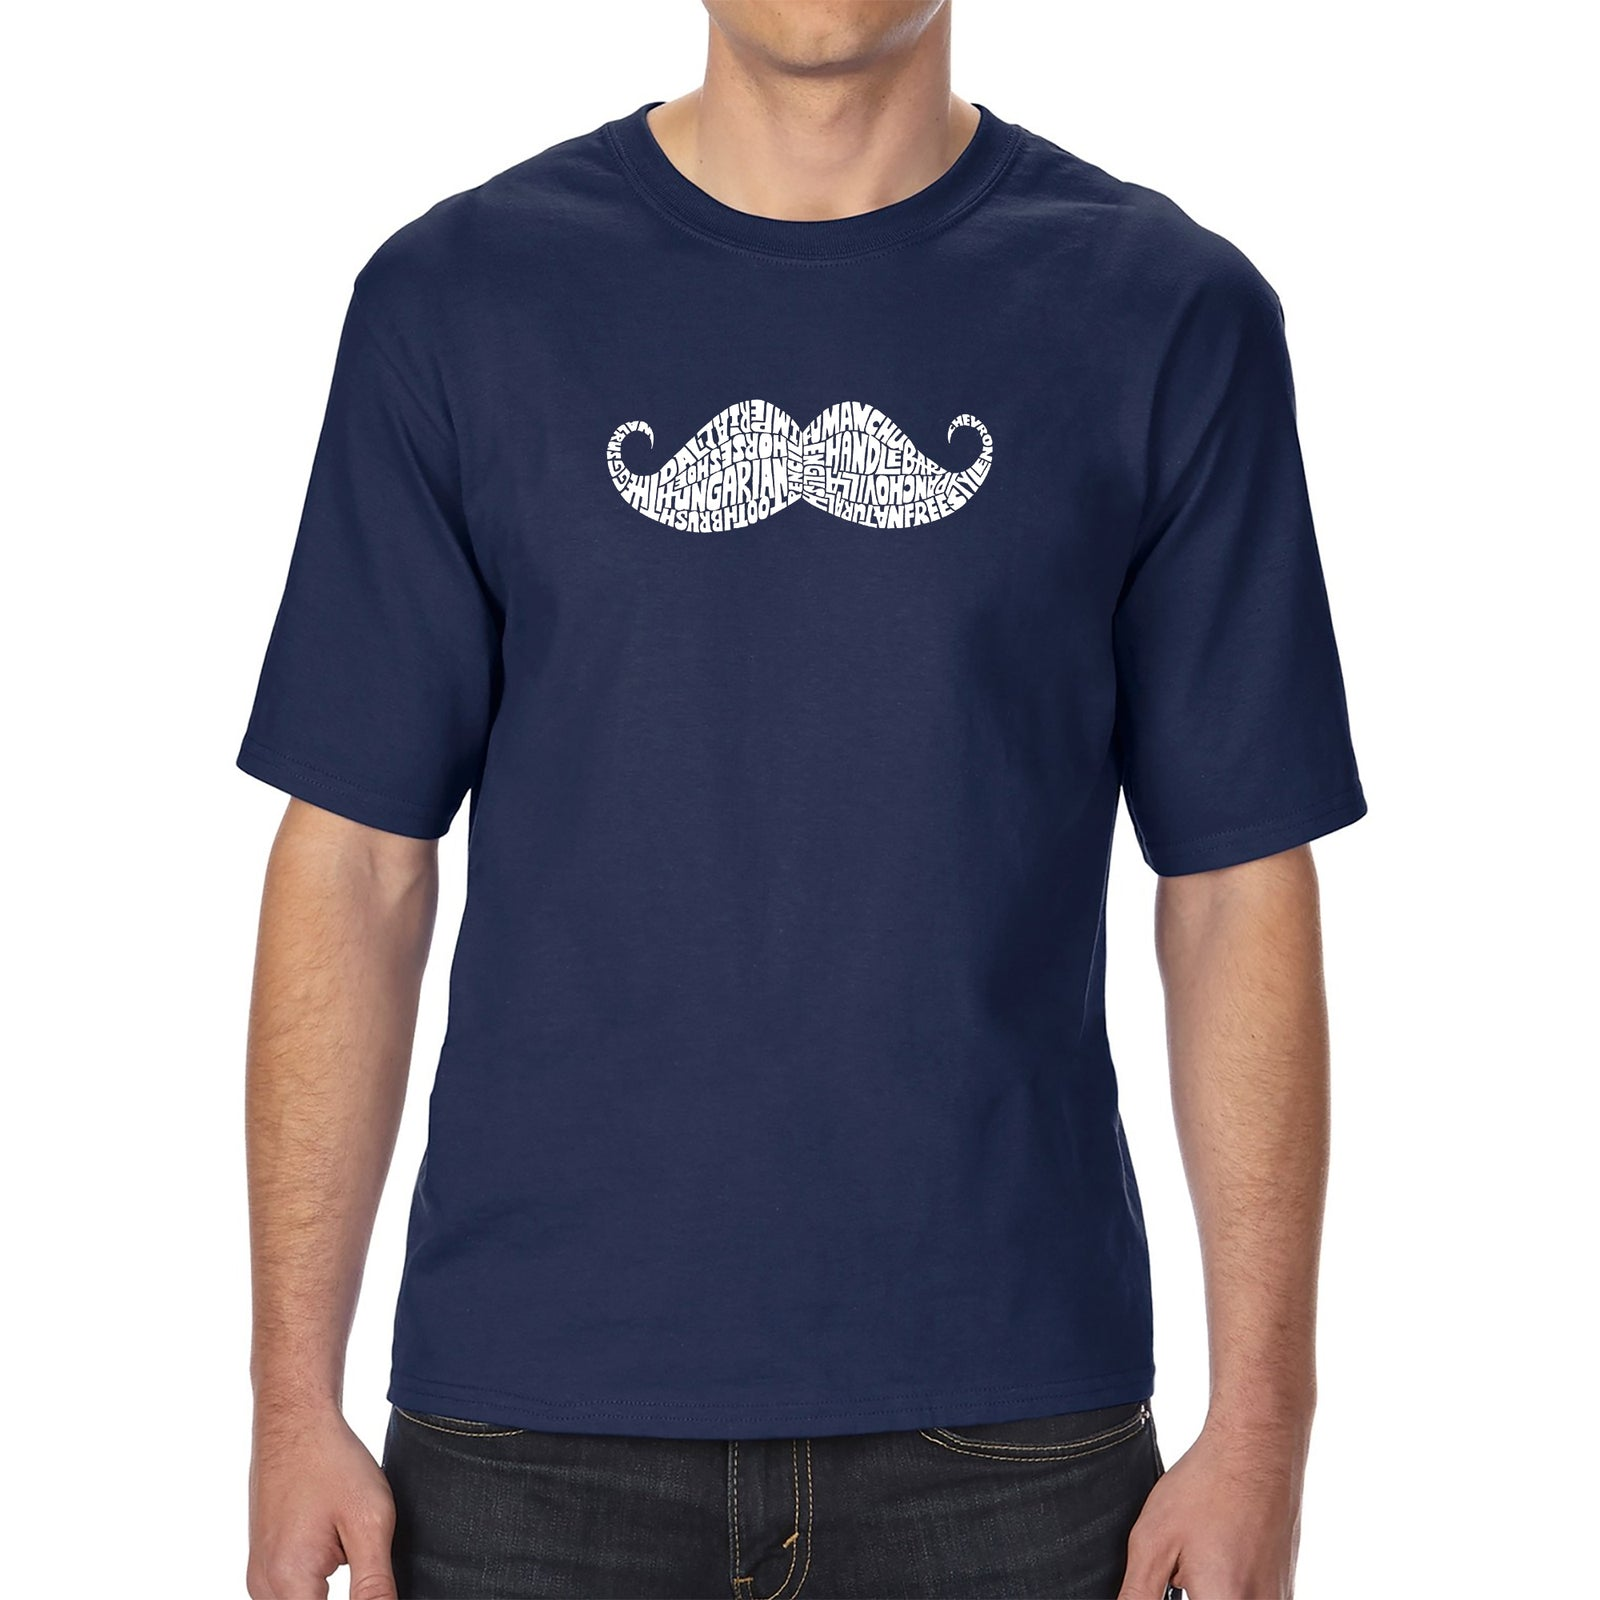 Men's Tall and Long Word Art T-shirt - WAYS TO STYLE A MOUSTACHE